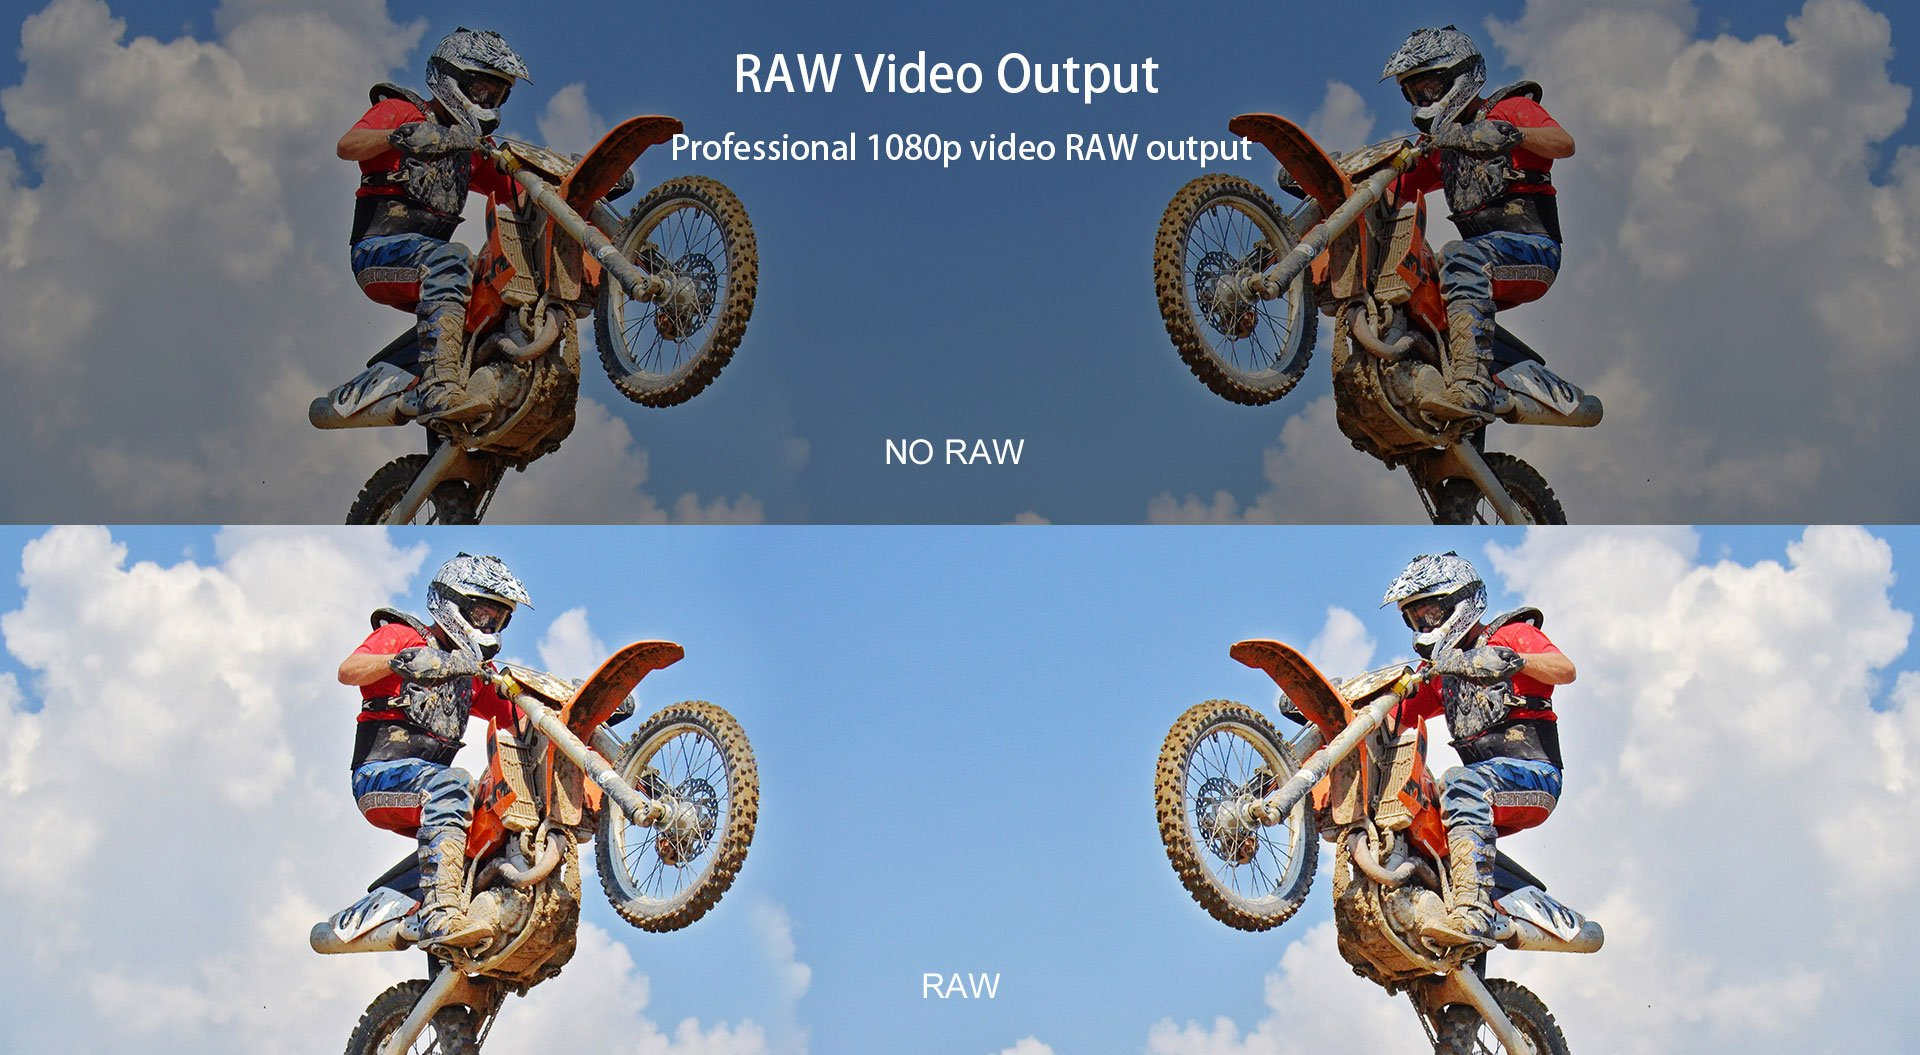 Professional 1080p video RAW output